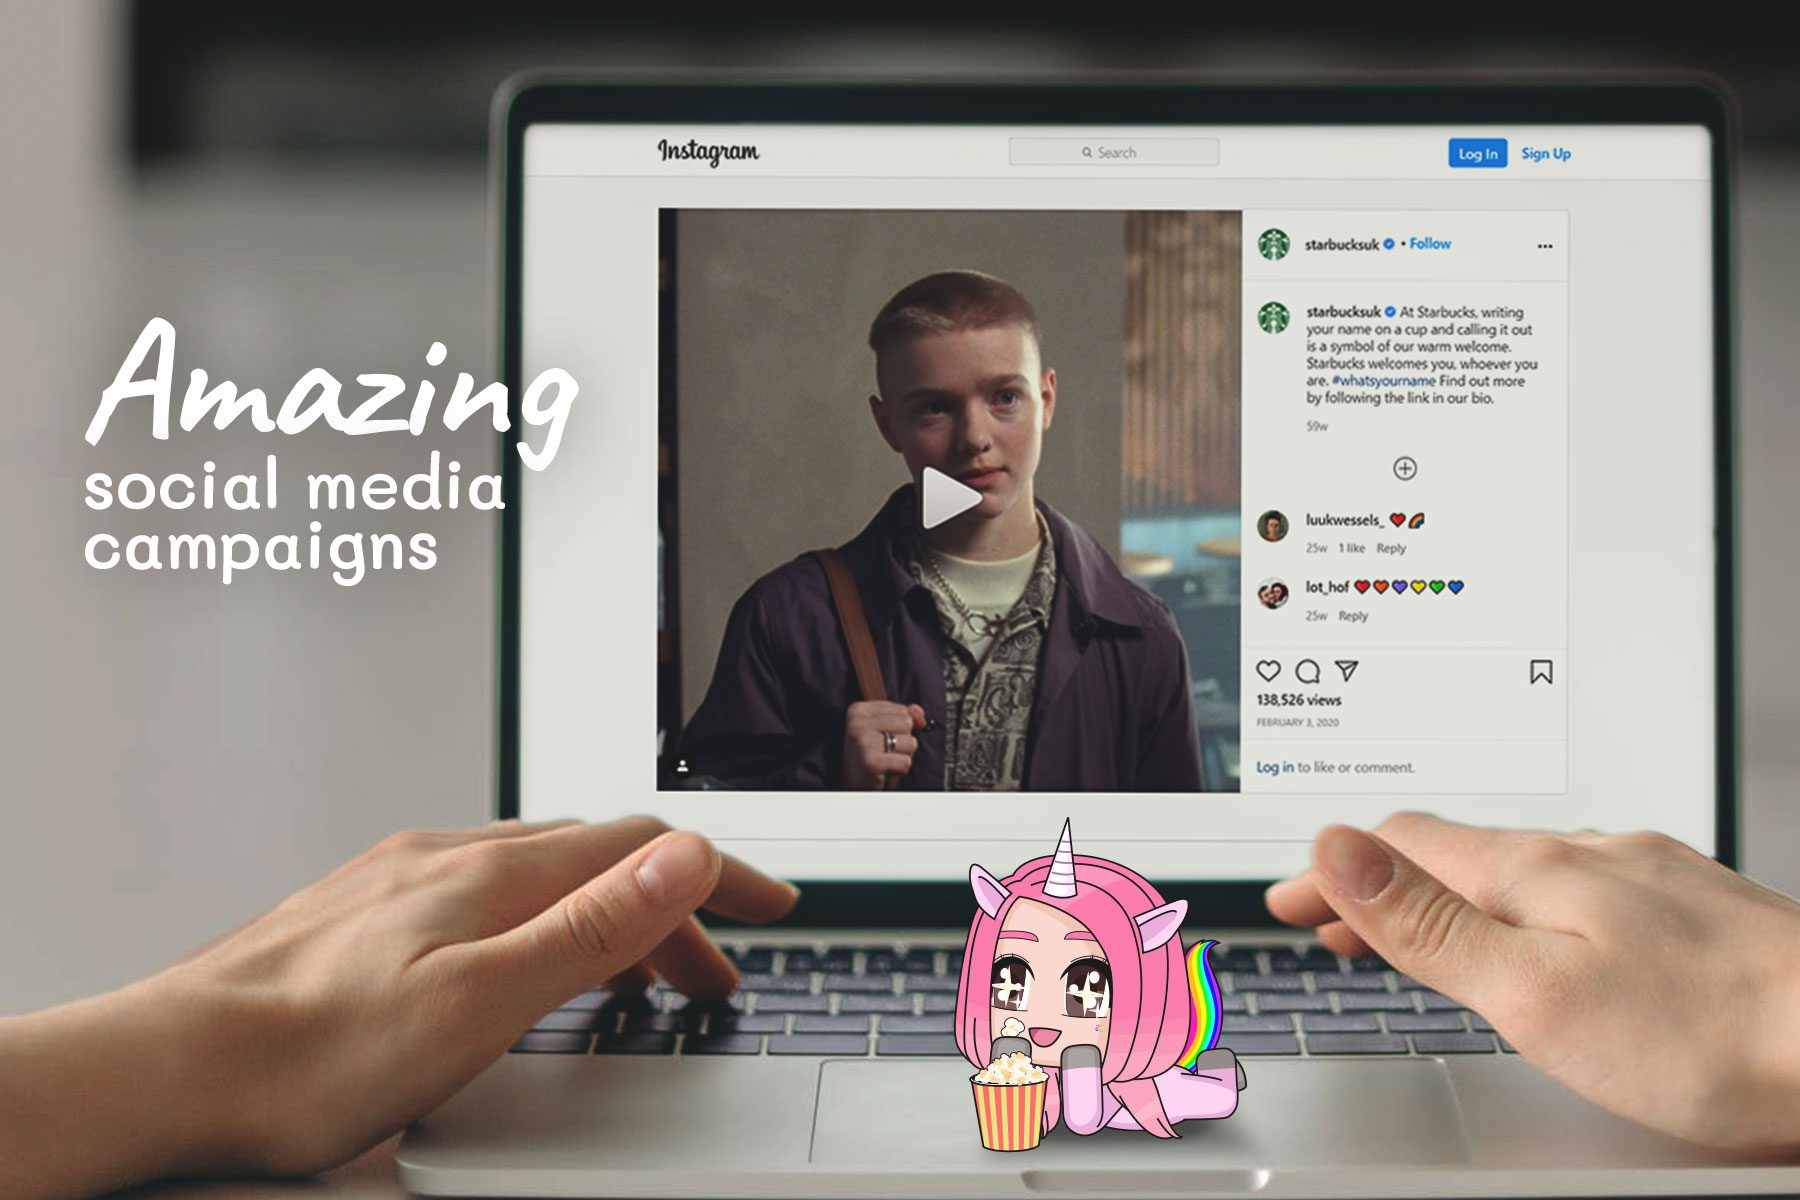 Three amazing social media campaign ideas and why they worked